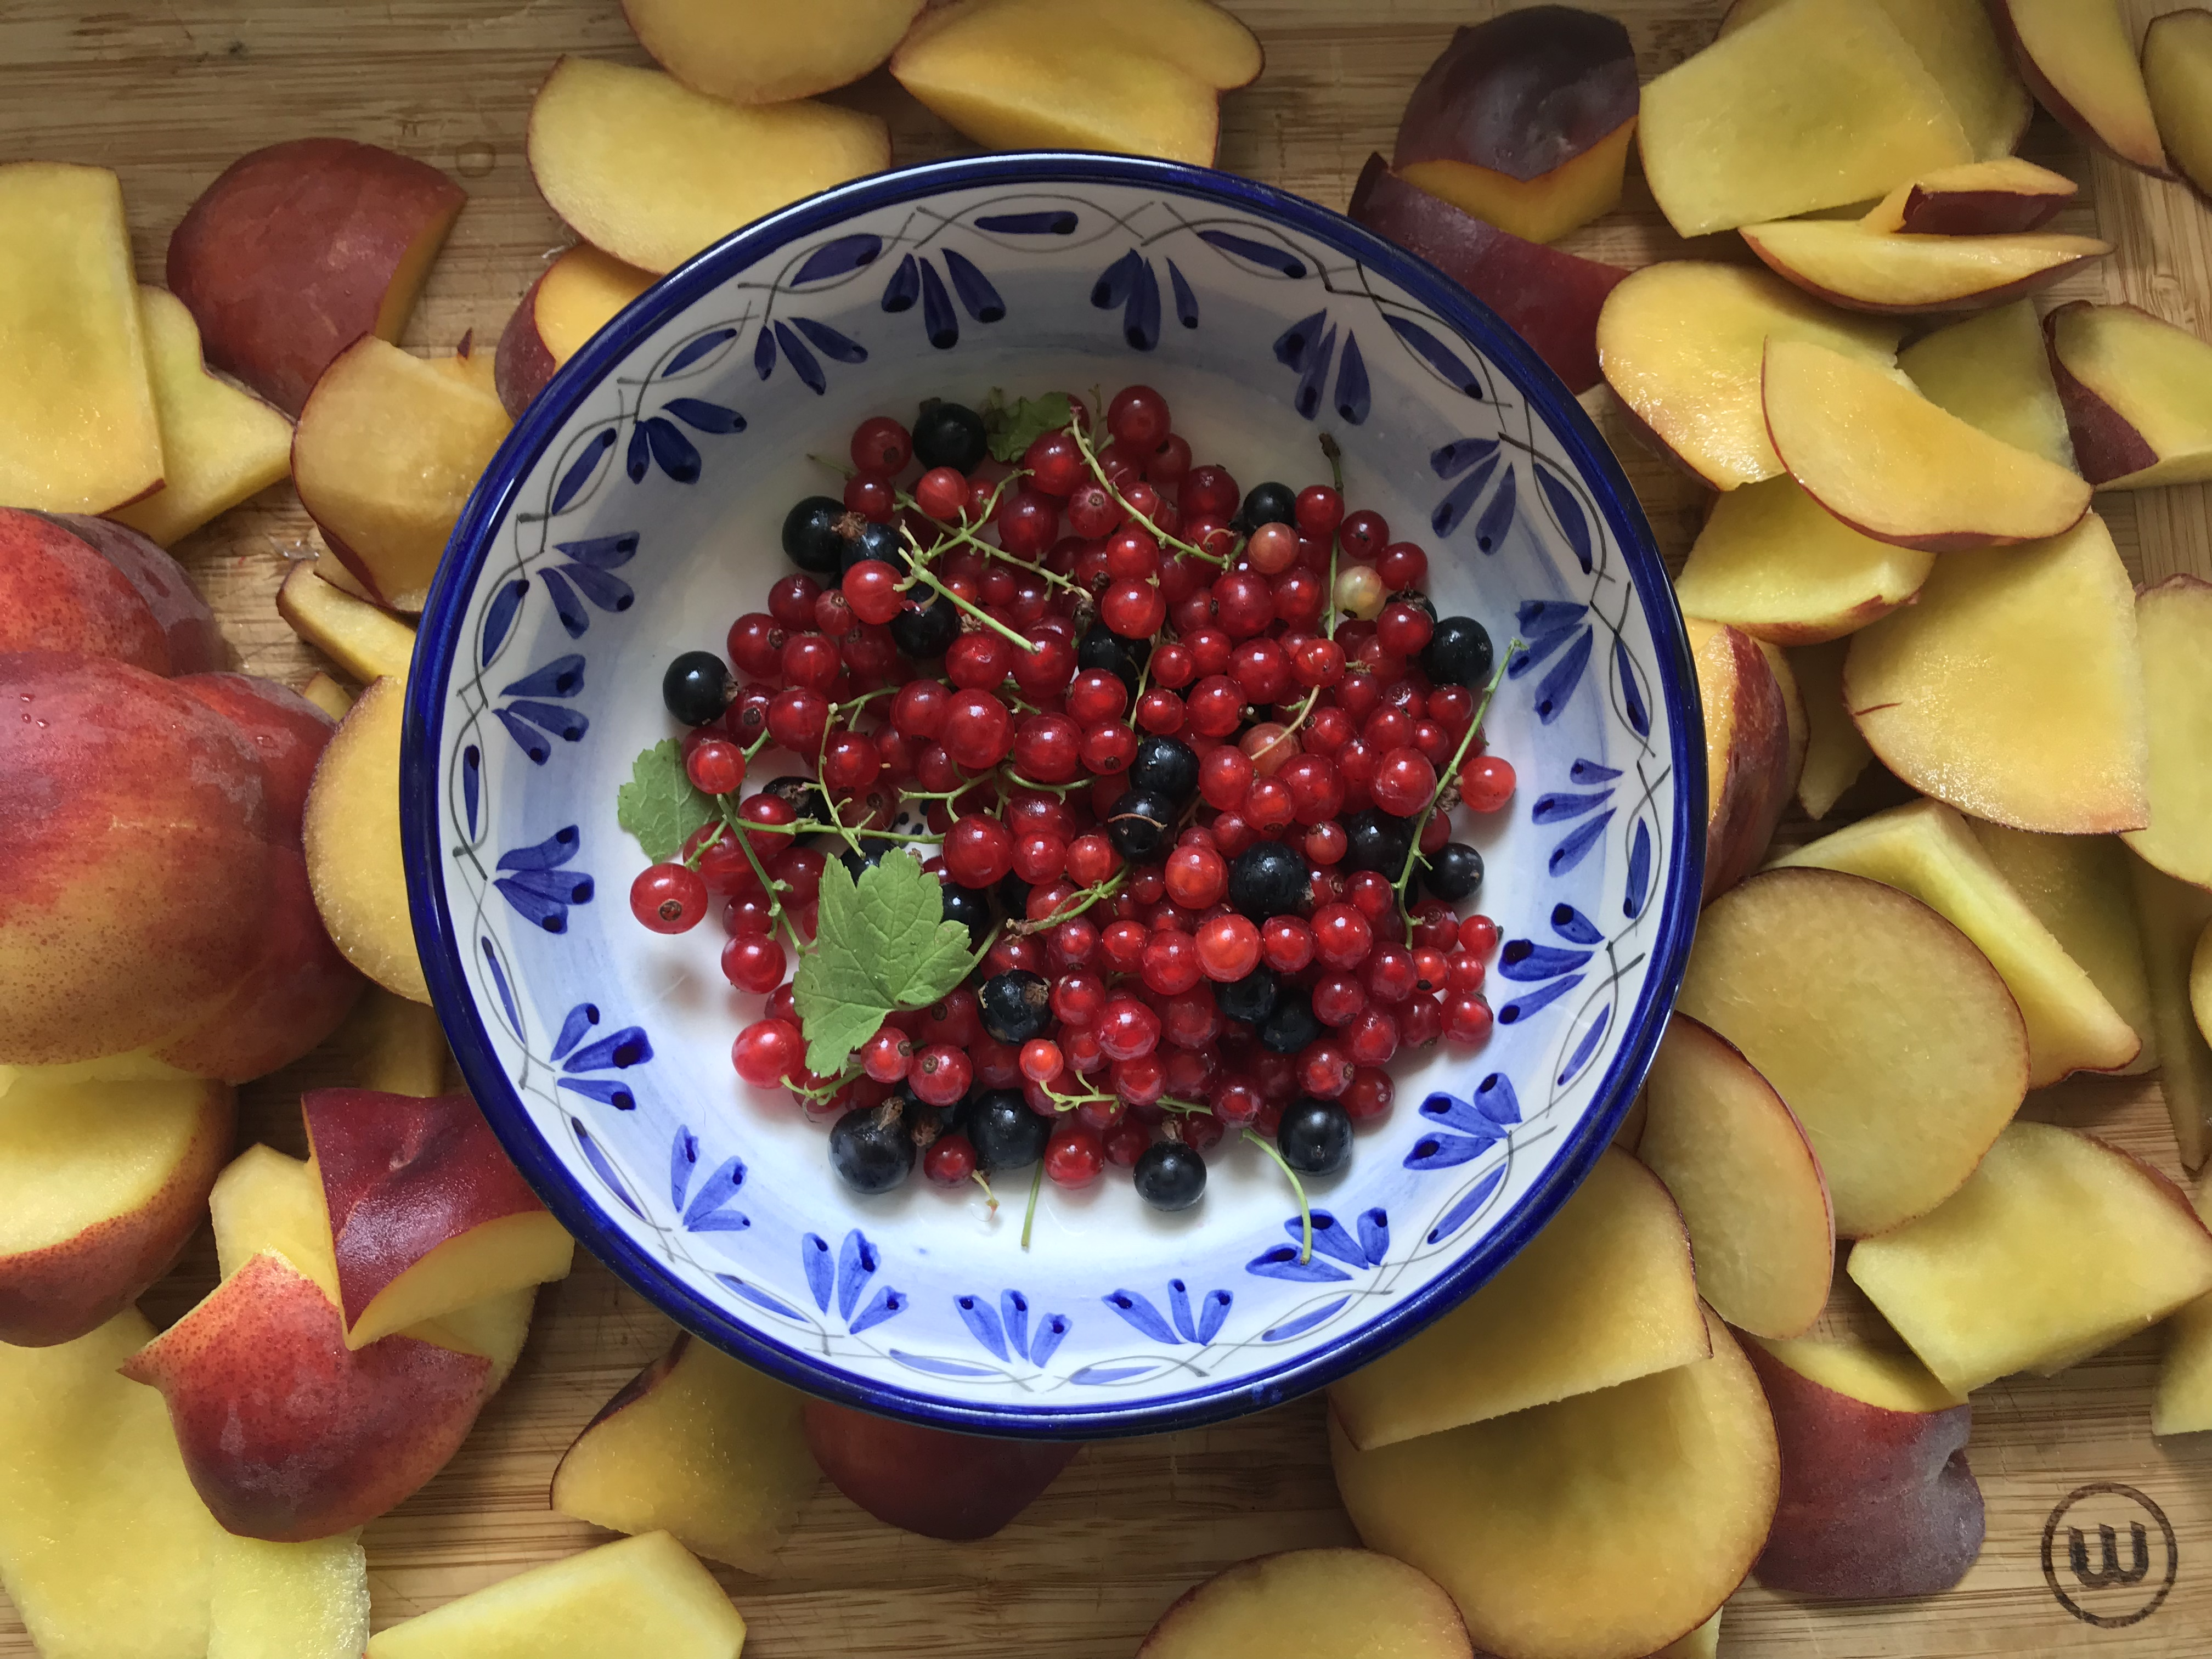 Spicy peach chutney with brandy and red currants